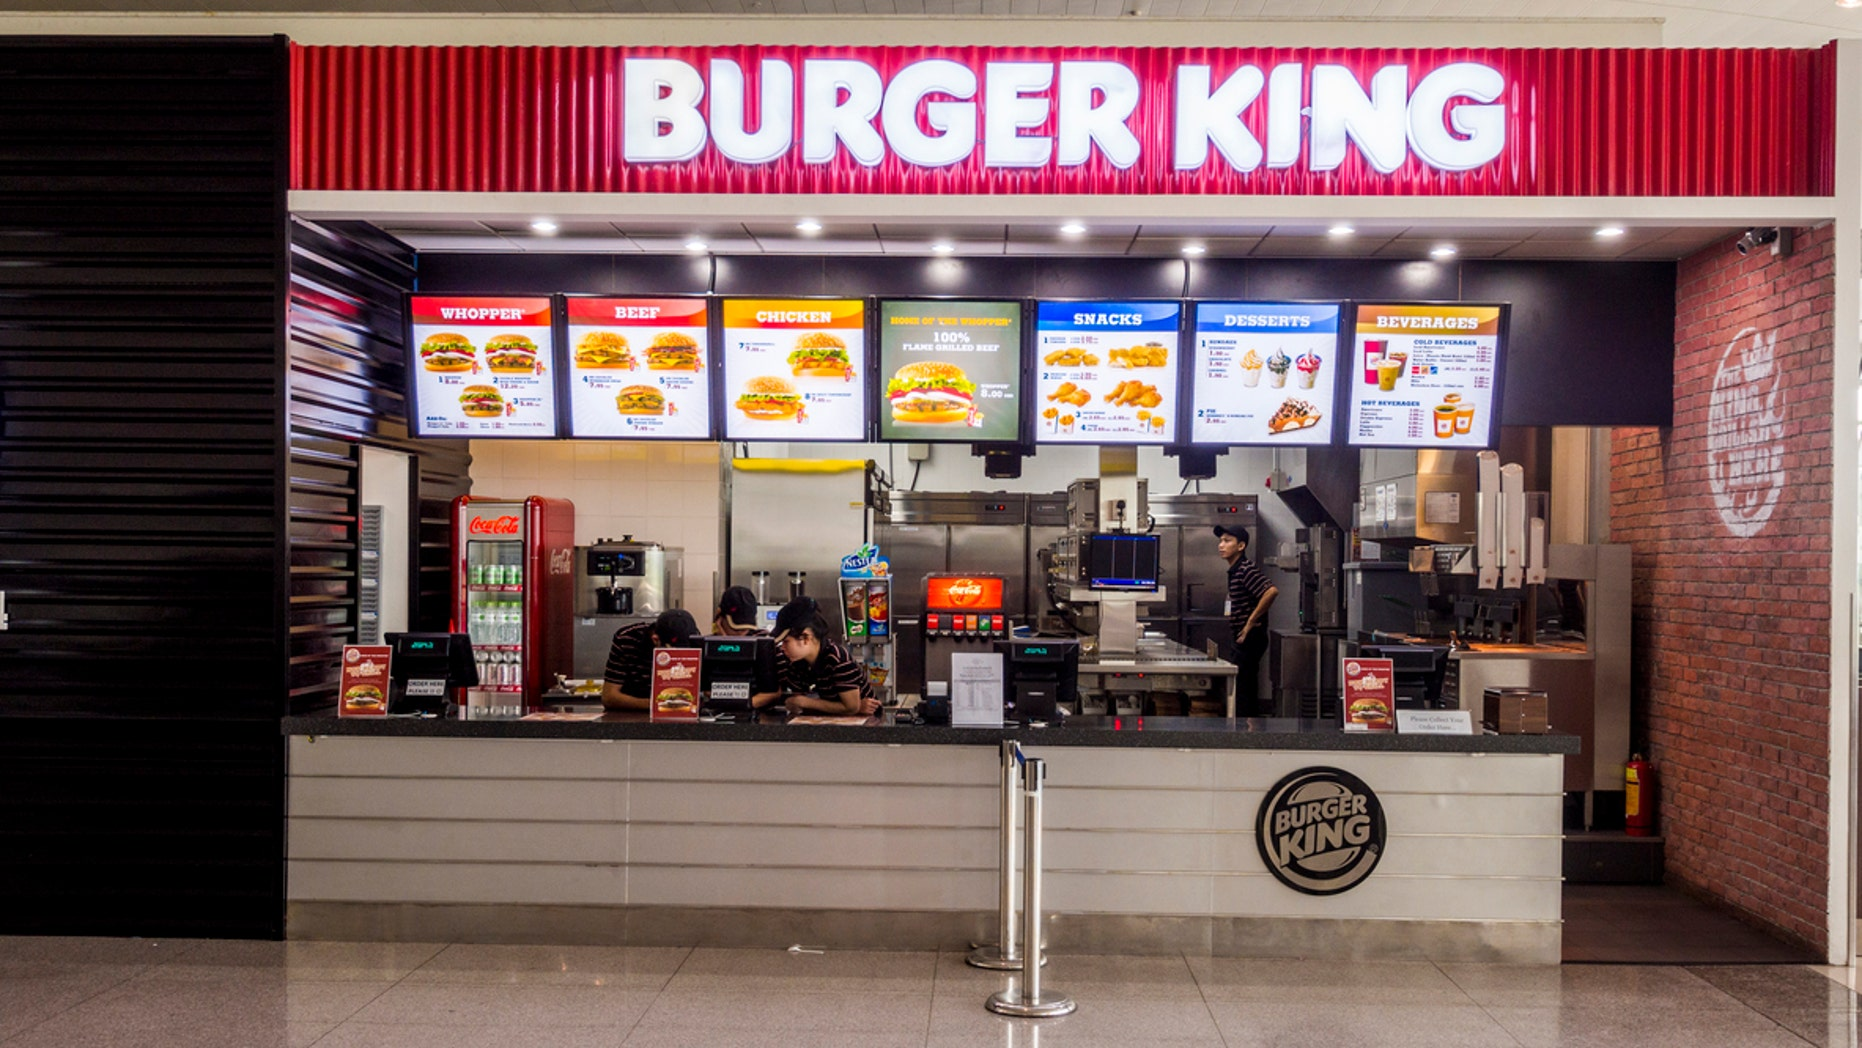 Burger King has launched an entire menu dedicated to trolling McDonald's.